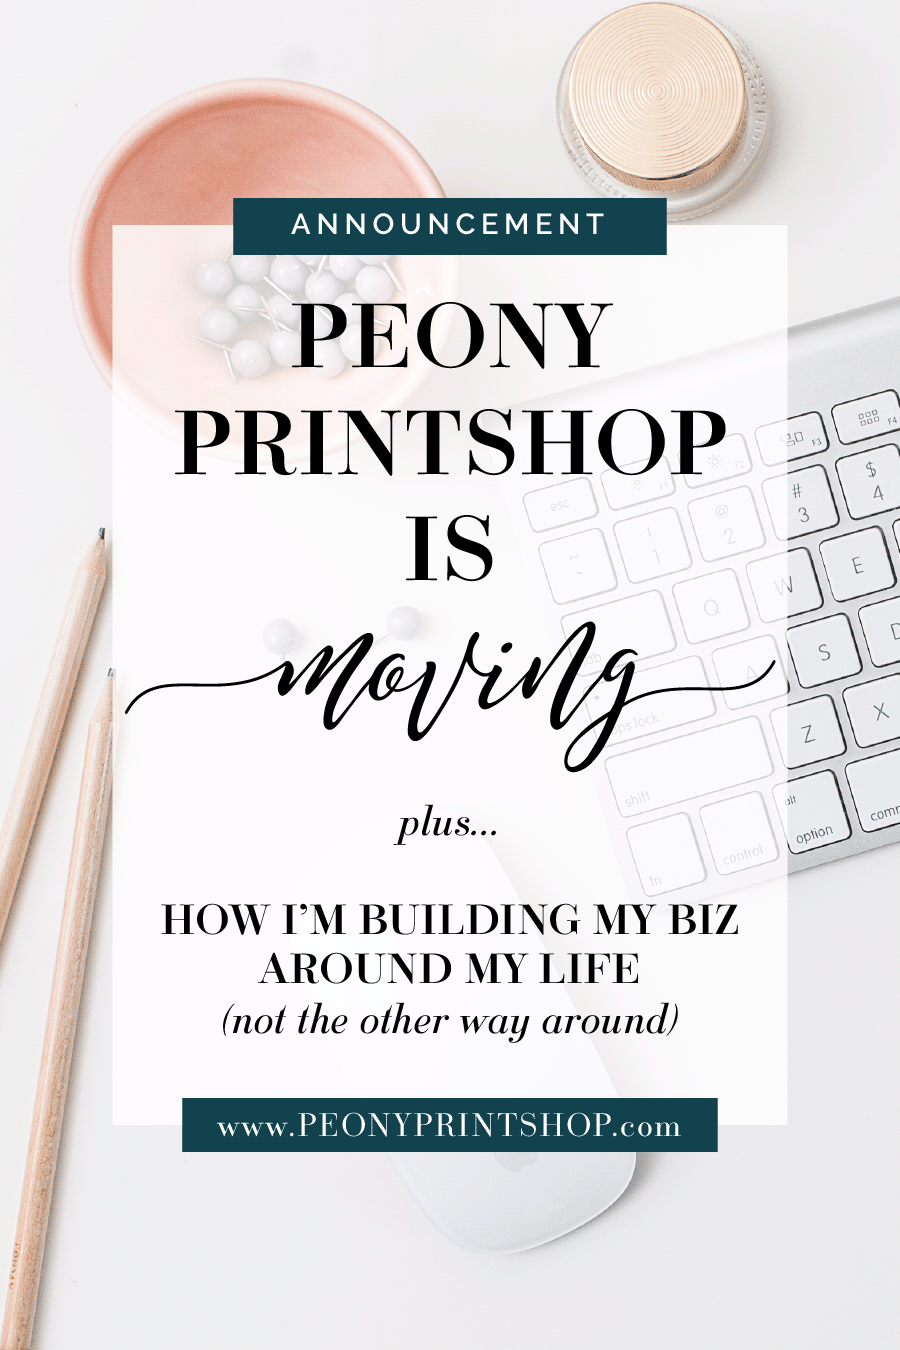 Peony Printshop is now Chelsea B Foster -- Follow along over at ChelseaBFoster.com for design, education, coaching, & consultation for small creative biz owners and solopreneurs.